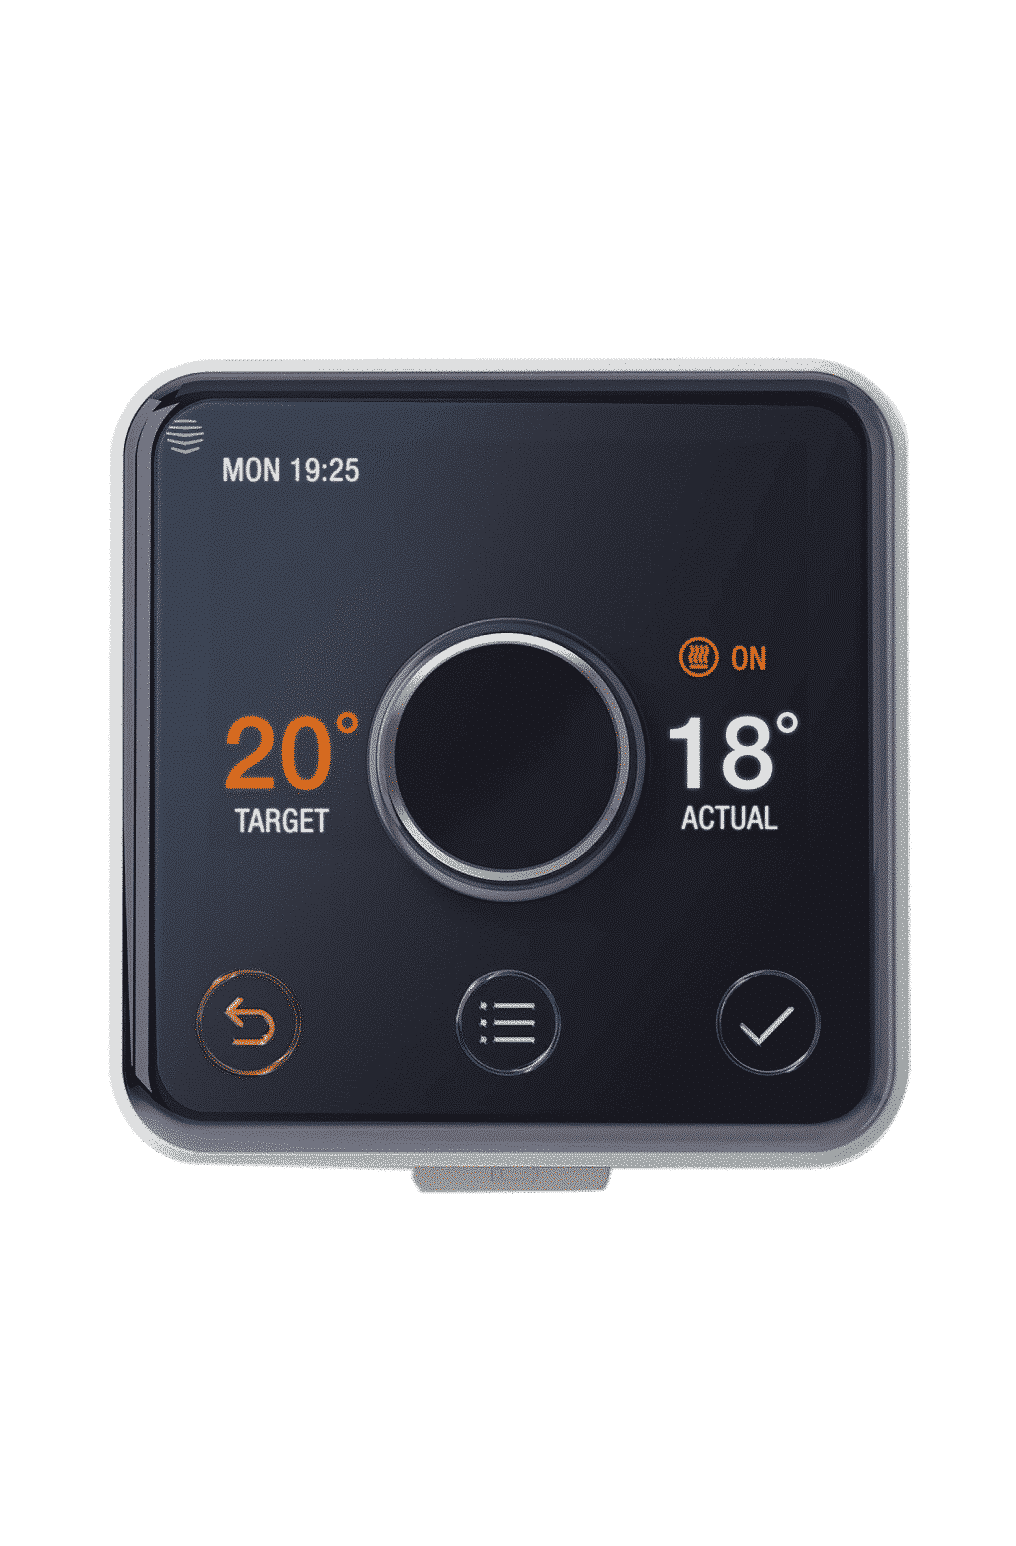 Hive smart thermostat free with every new combi boiler